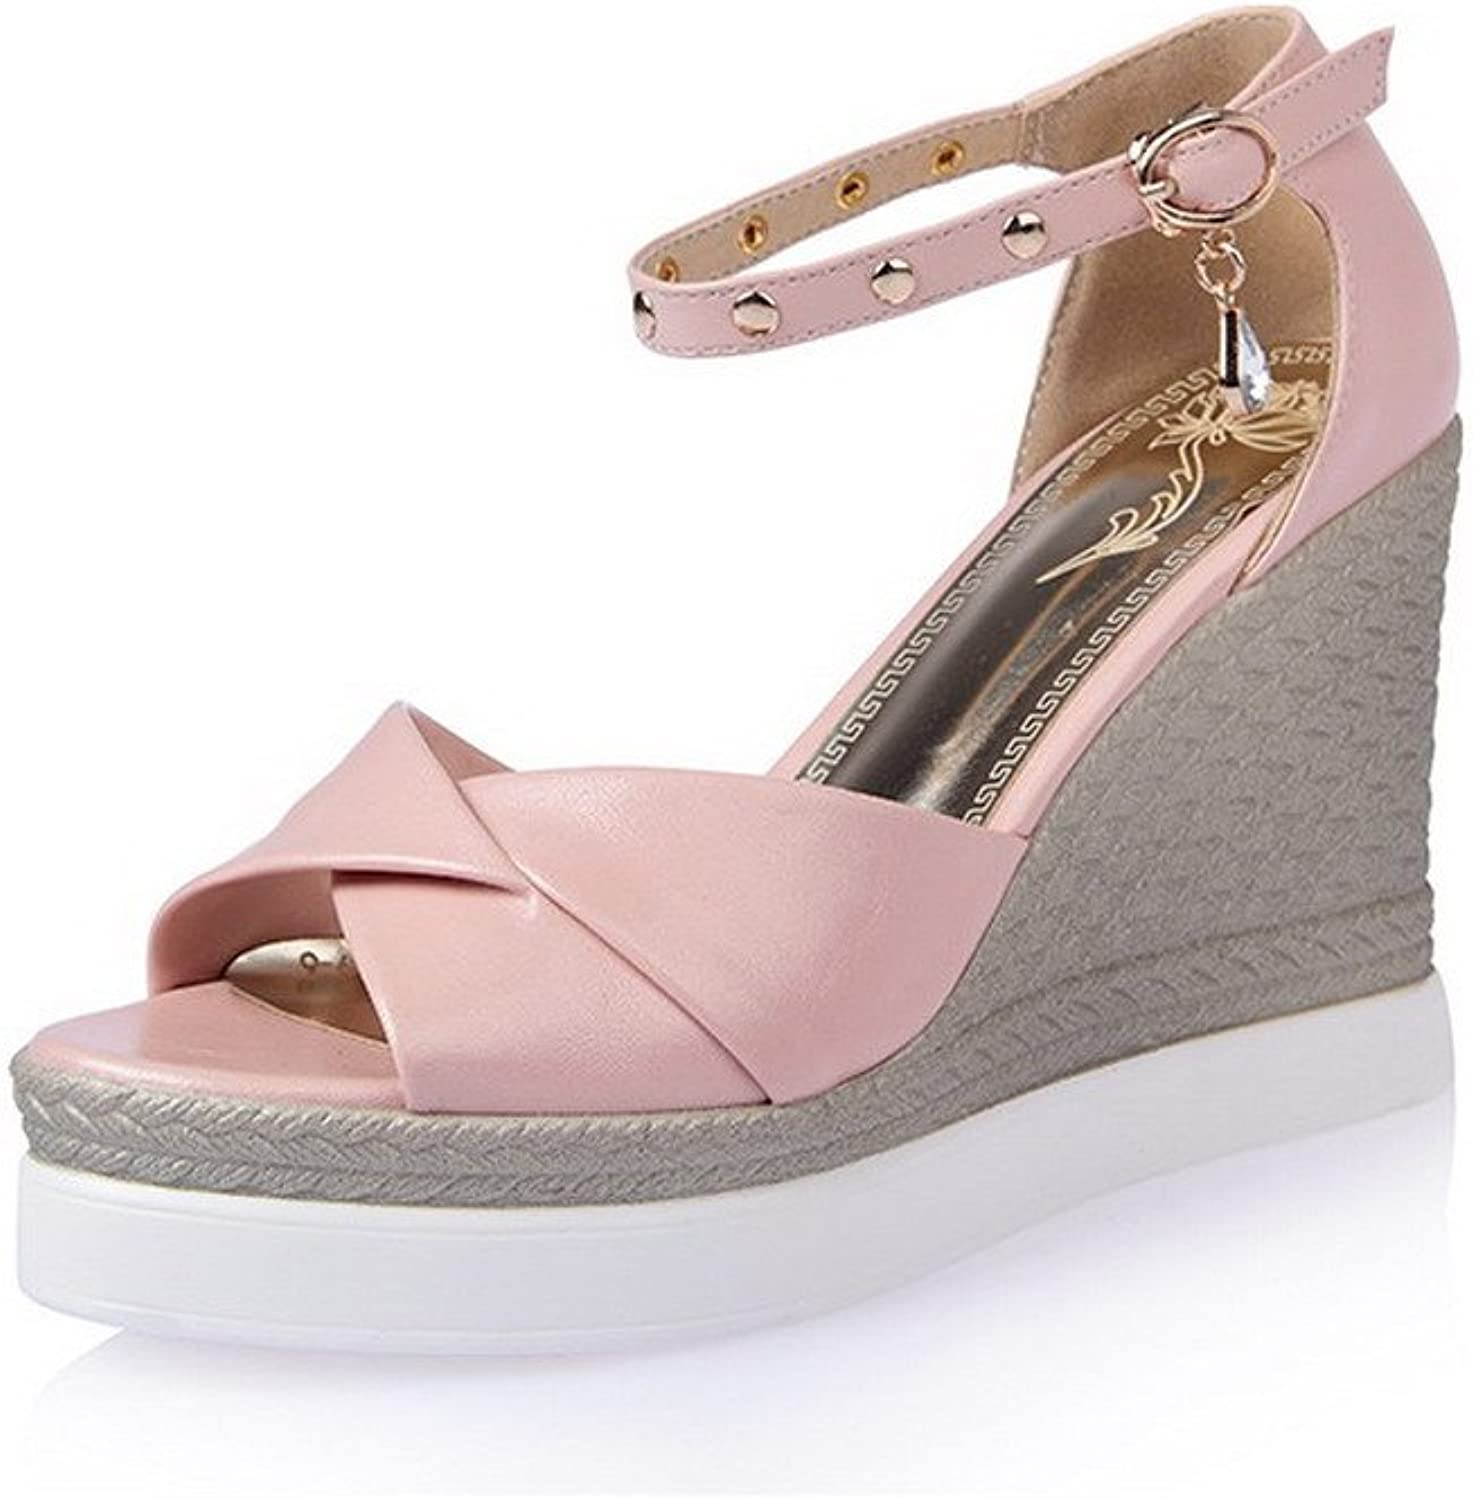 AmoonyFashion Women's Soft Leather Buckle Open Toe High-Heels Solid Sandals